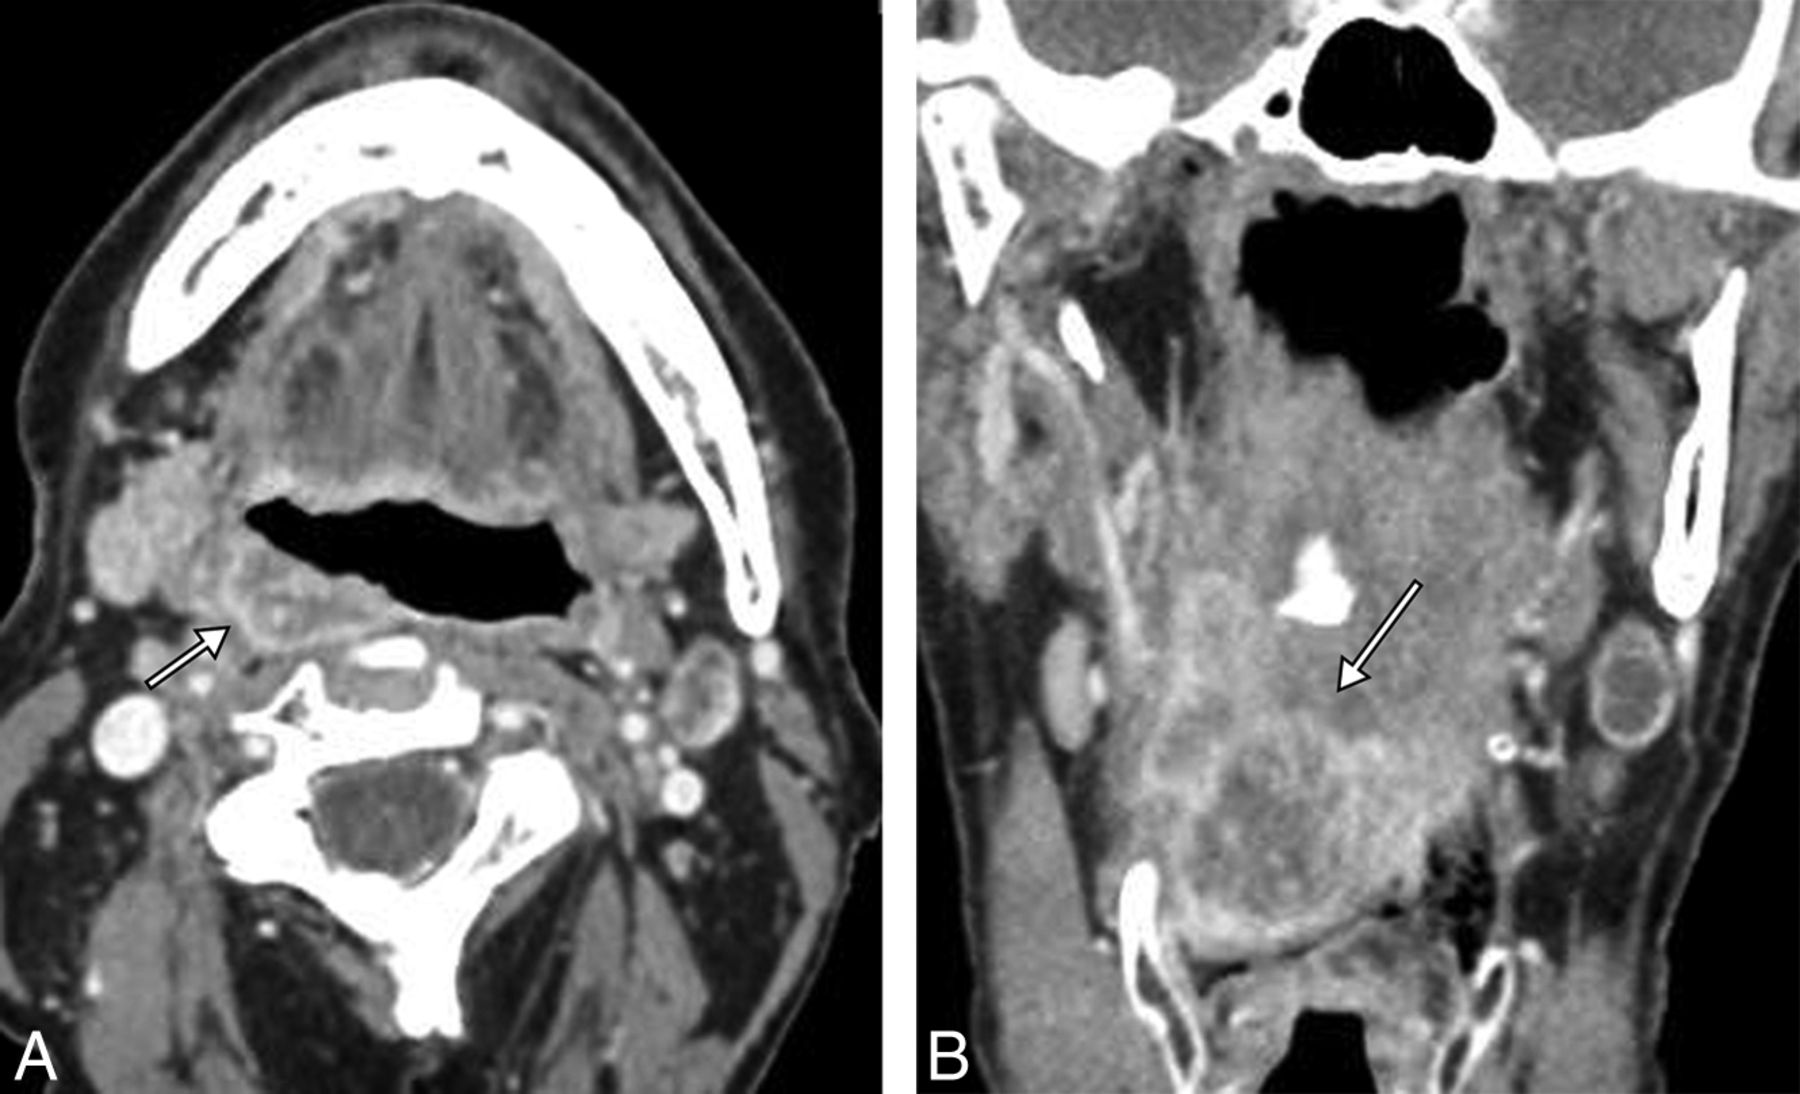 Do Radiologists Report the TNM Staging in Radiology Reports